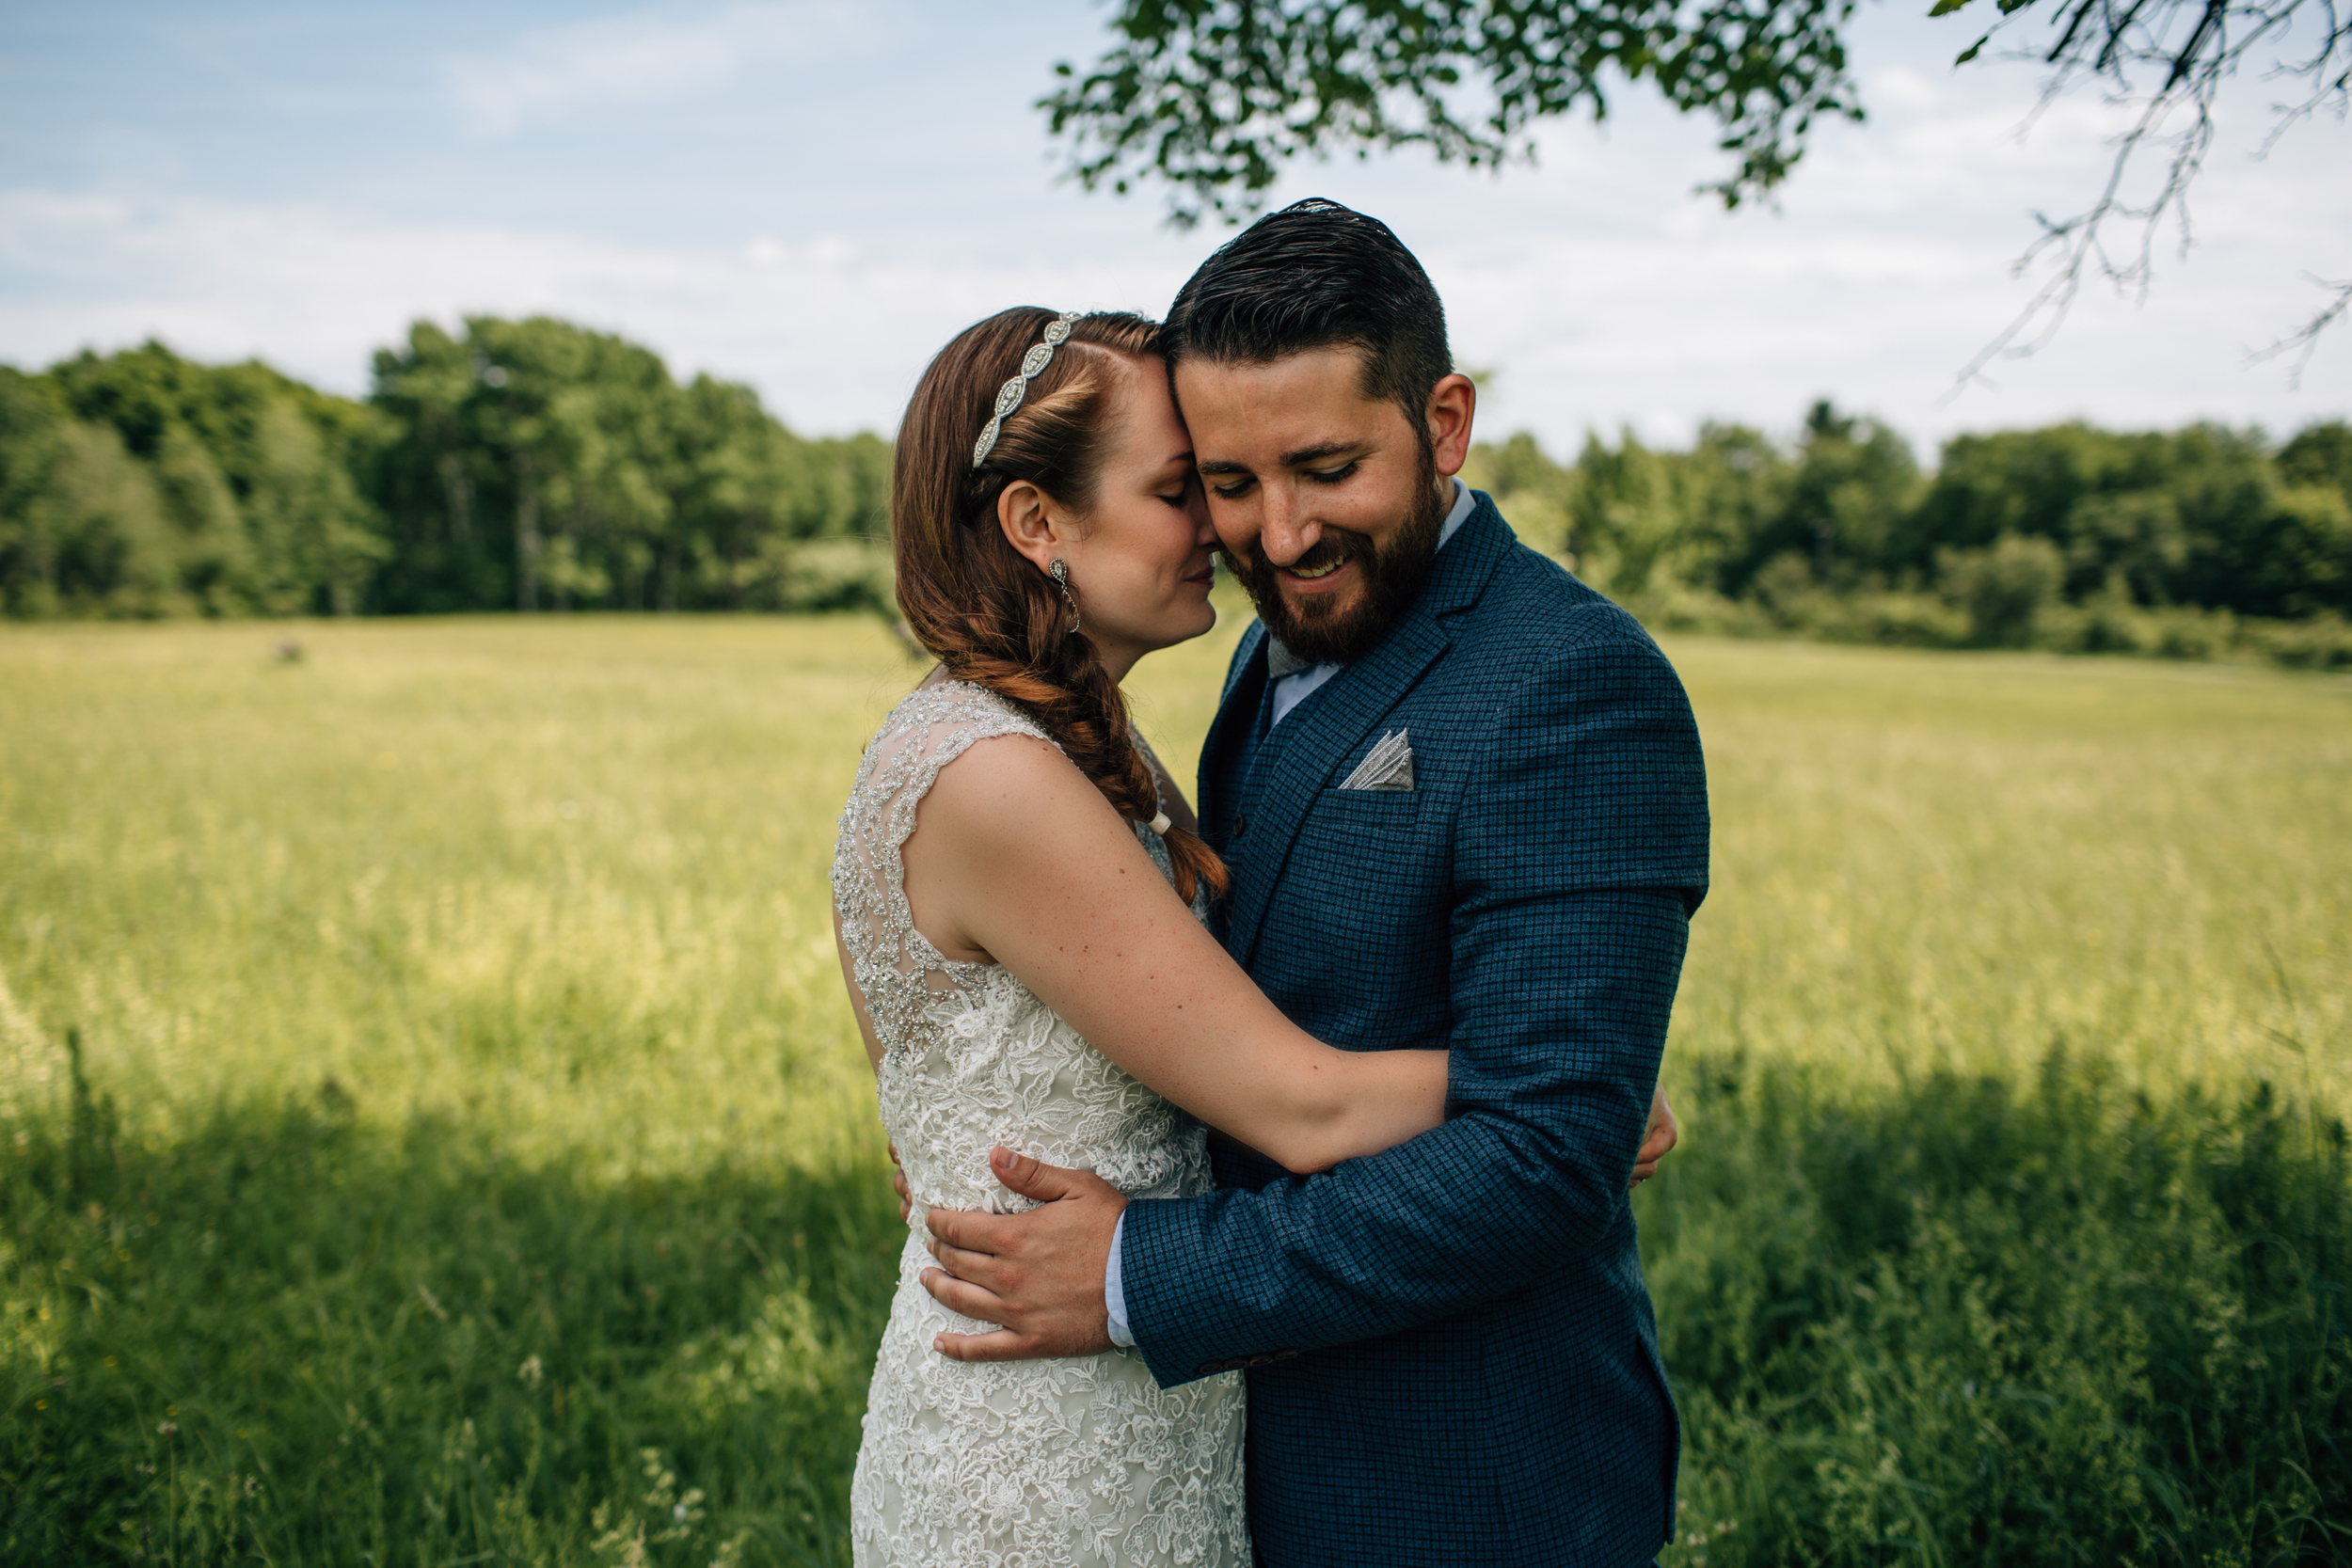 KELLIandBRADweddingJUNE2015 - portraits (105 of 142).jpg